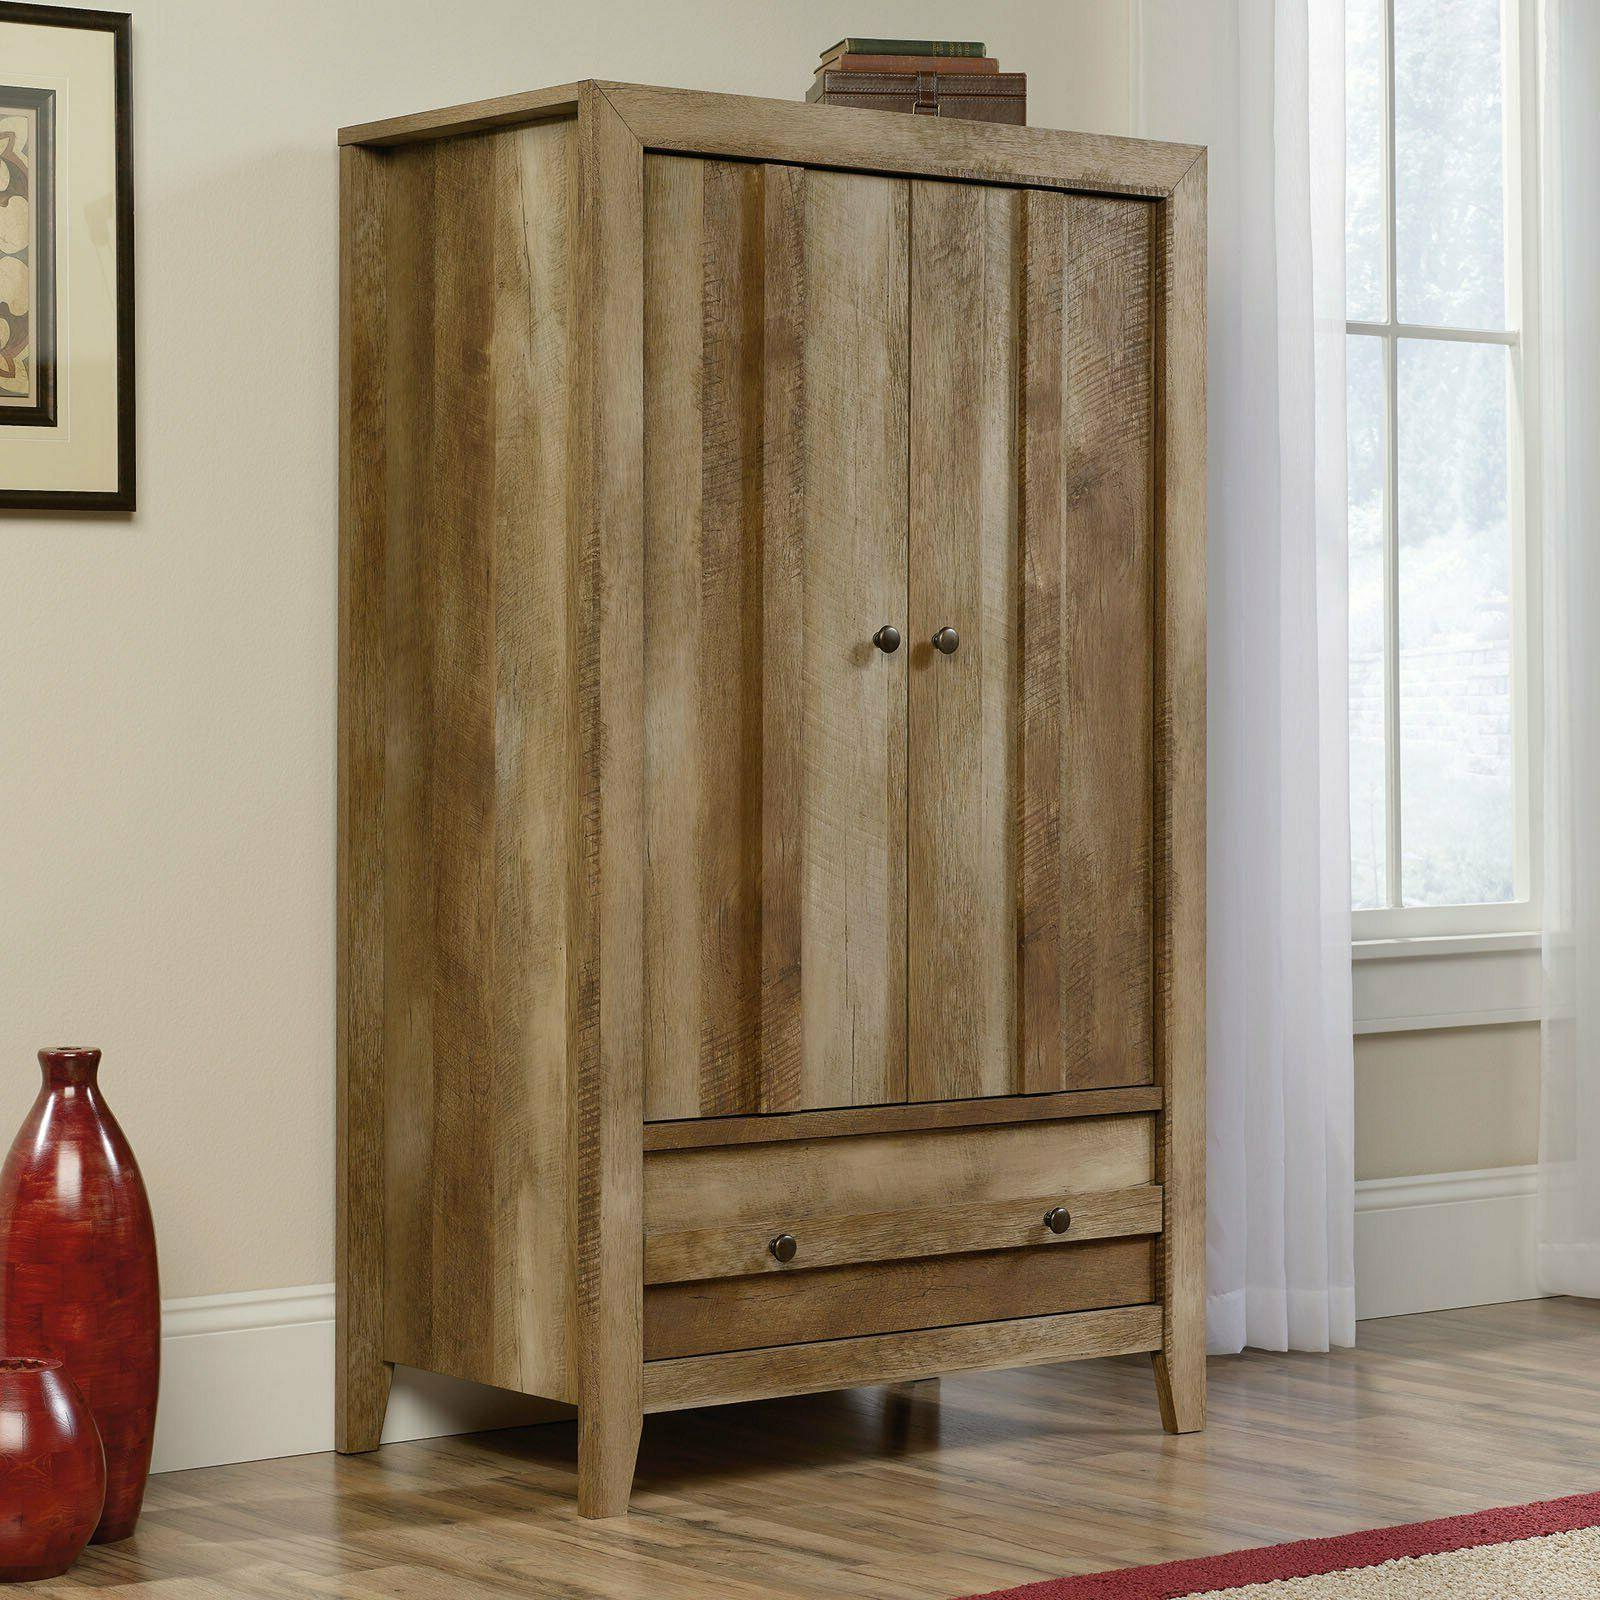 Rustic Wardrobe Storage Cabinet Bedroom Closet Armoire Dress